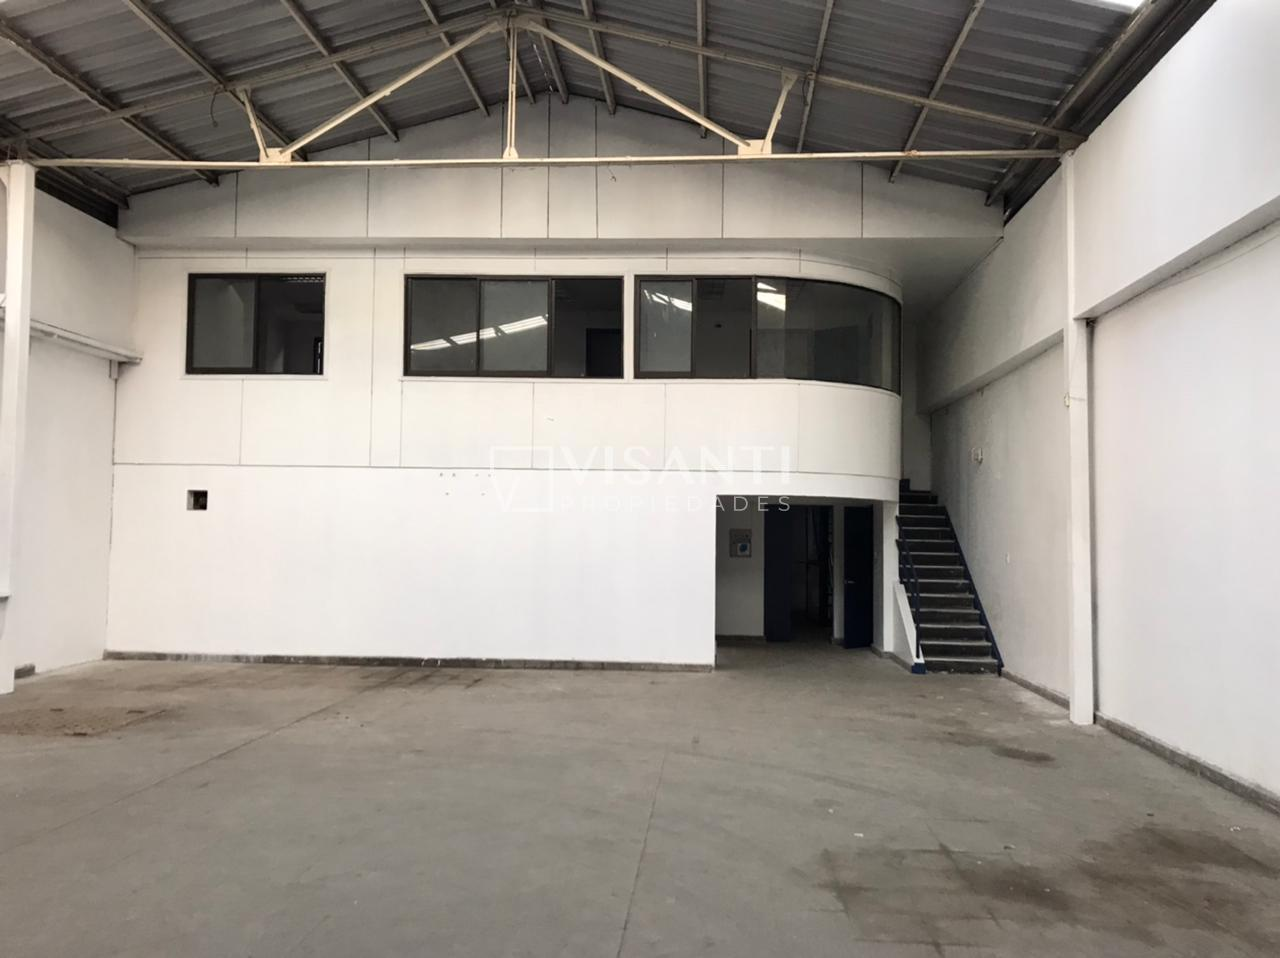 LOCAL COMERCIAL 693 M2 CENTRAL